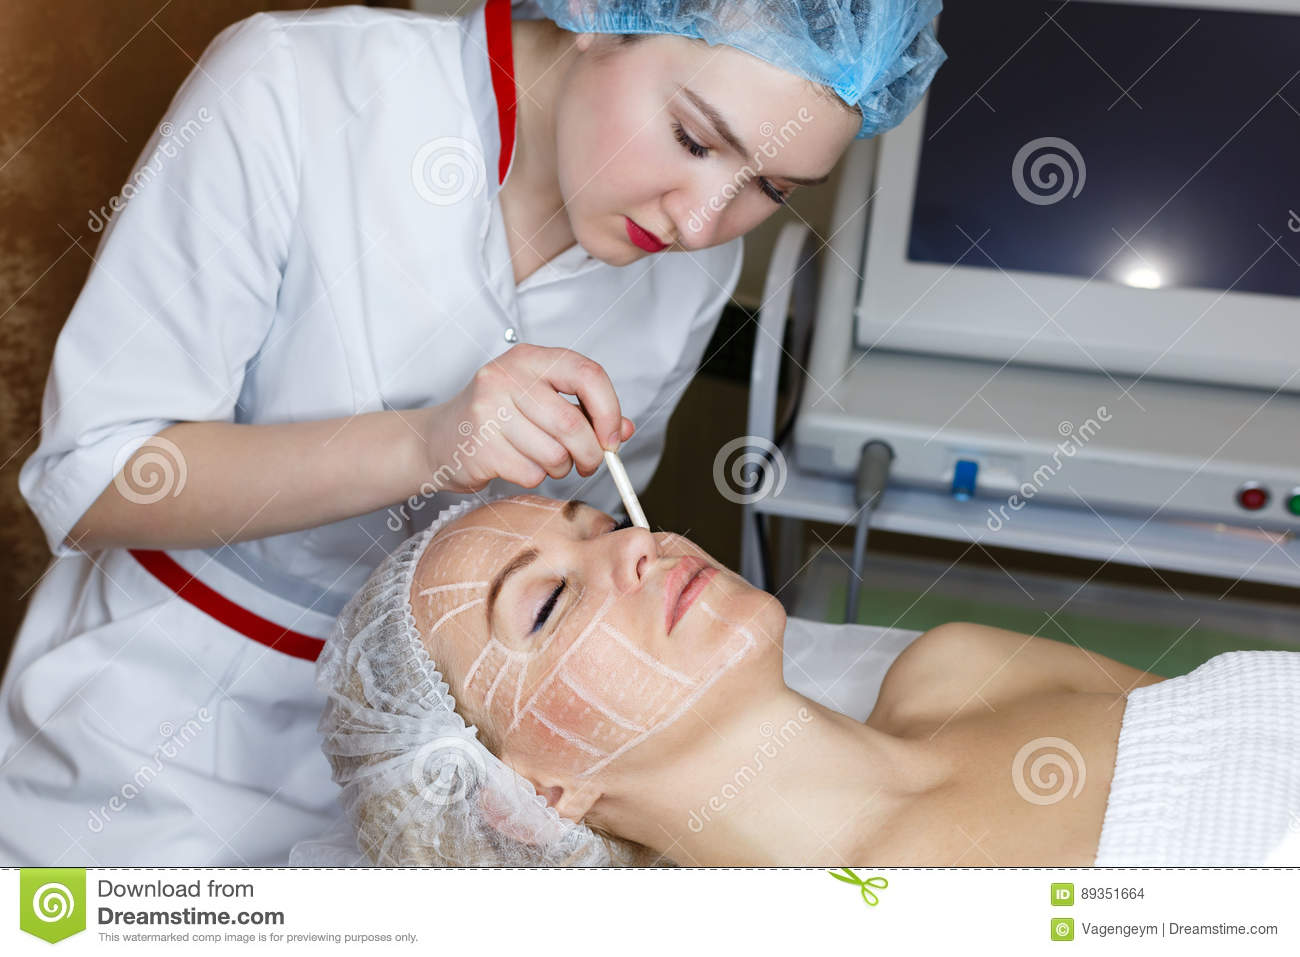 Variant, Facial care process for